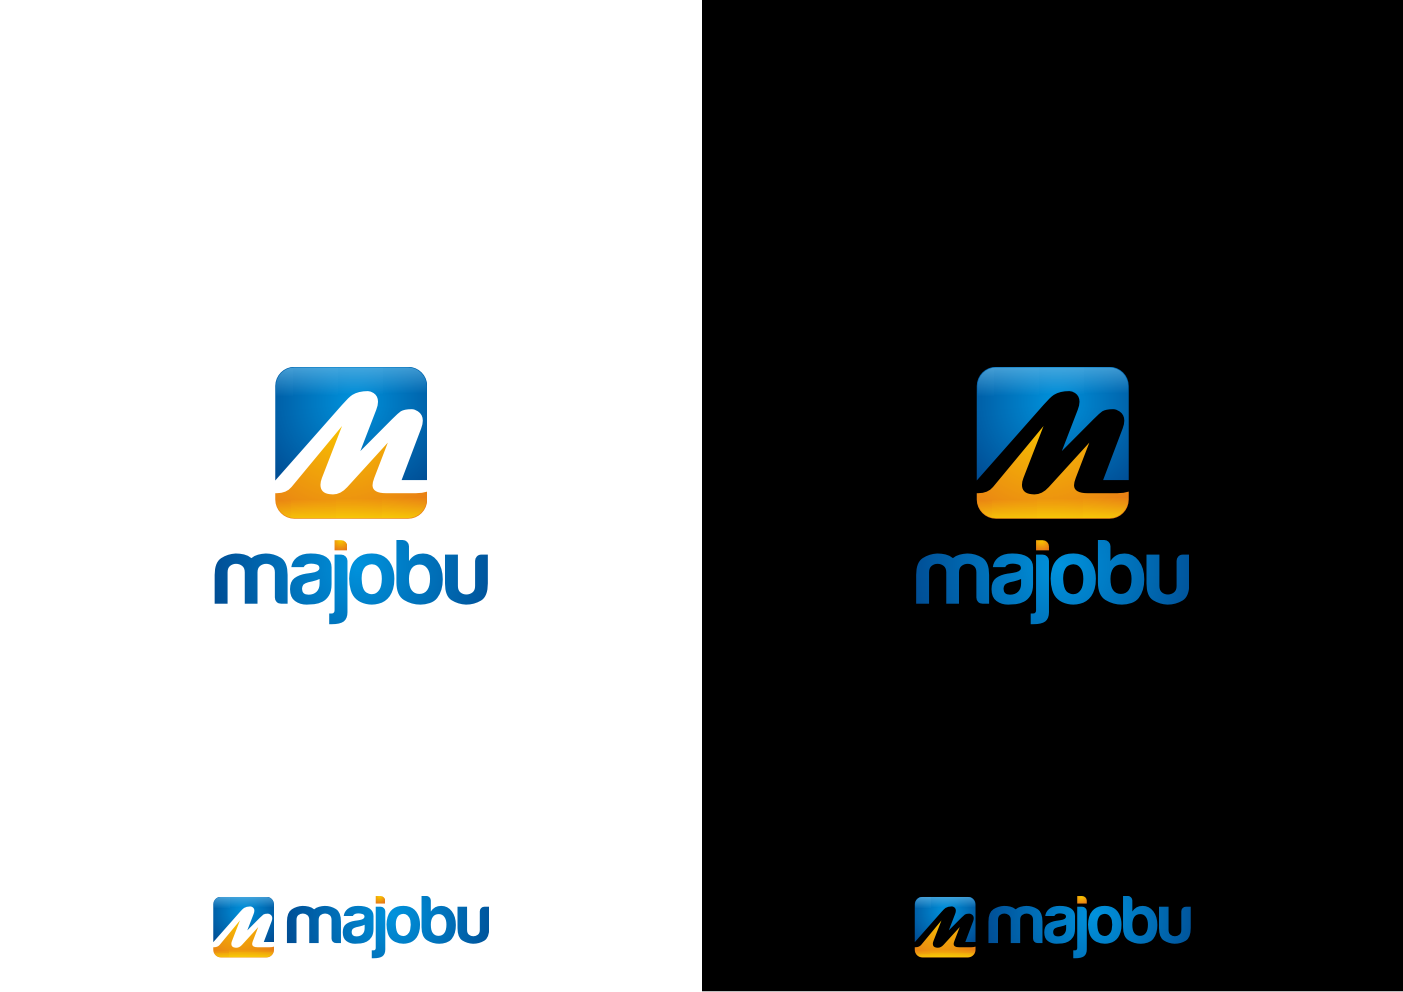 Logo Design by PayZ - Entry No. 95 in the Logo Design Contest Inspiring Logo Design for Majobu.